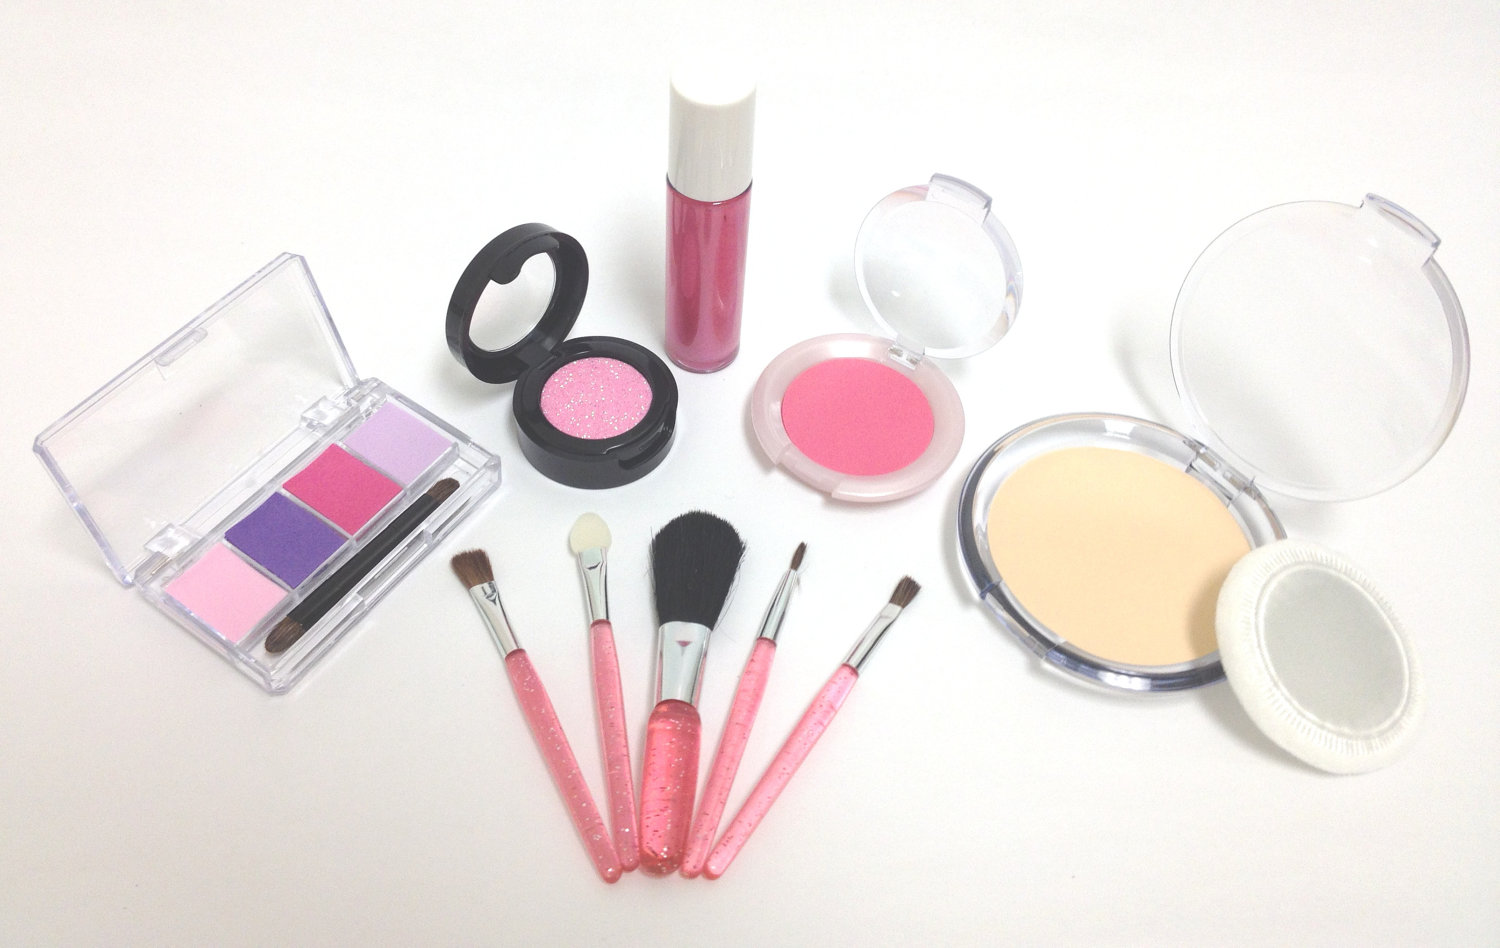 little cosmetics essentials kit